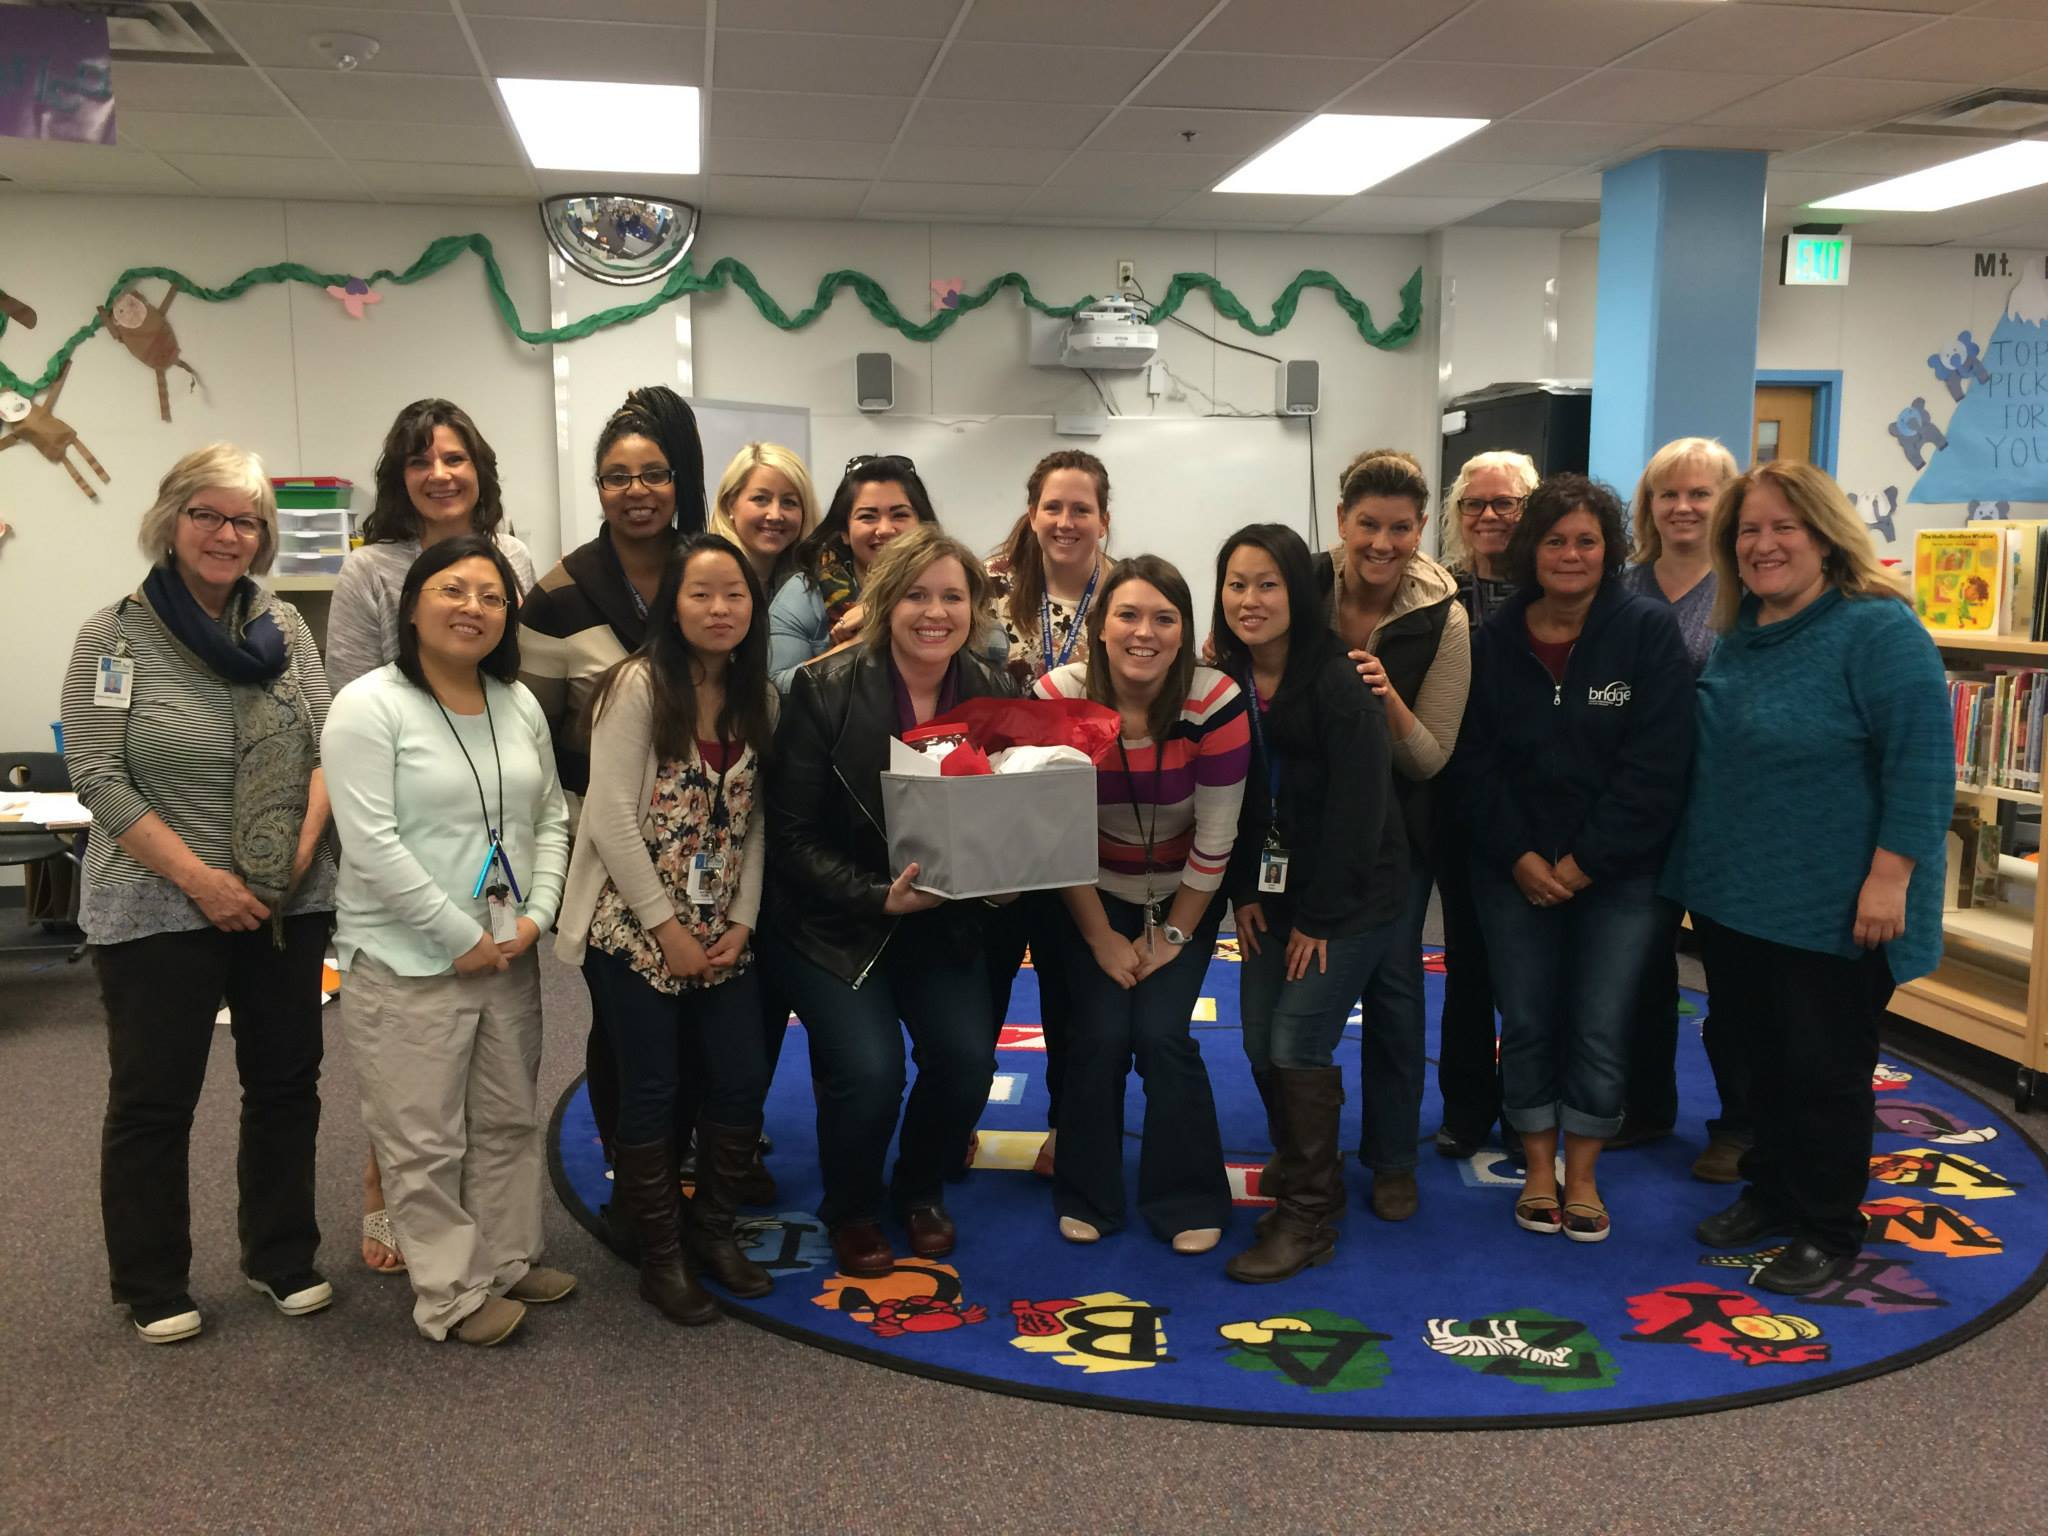 Staff at Eastern Heights Elementary